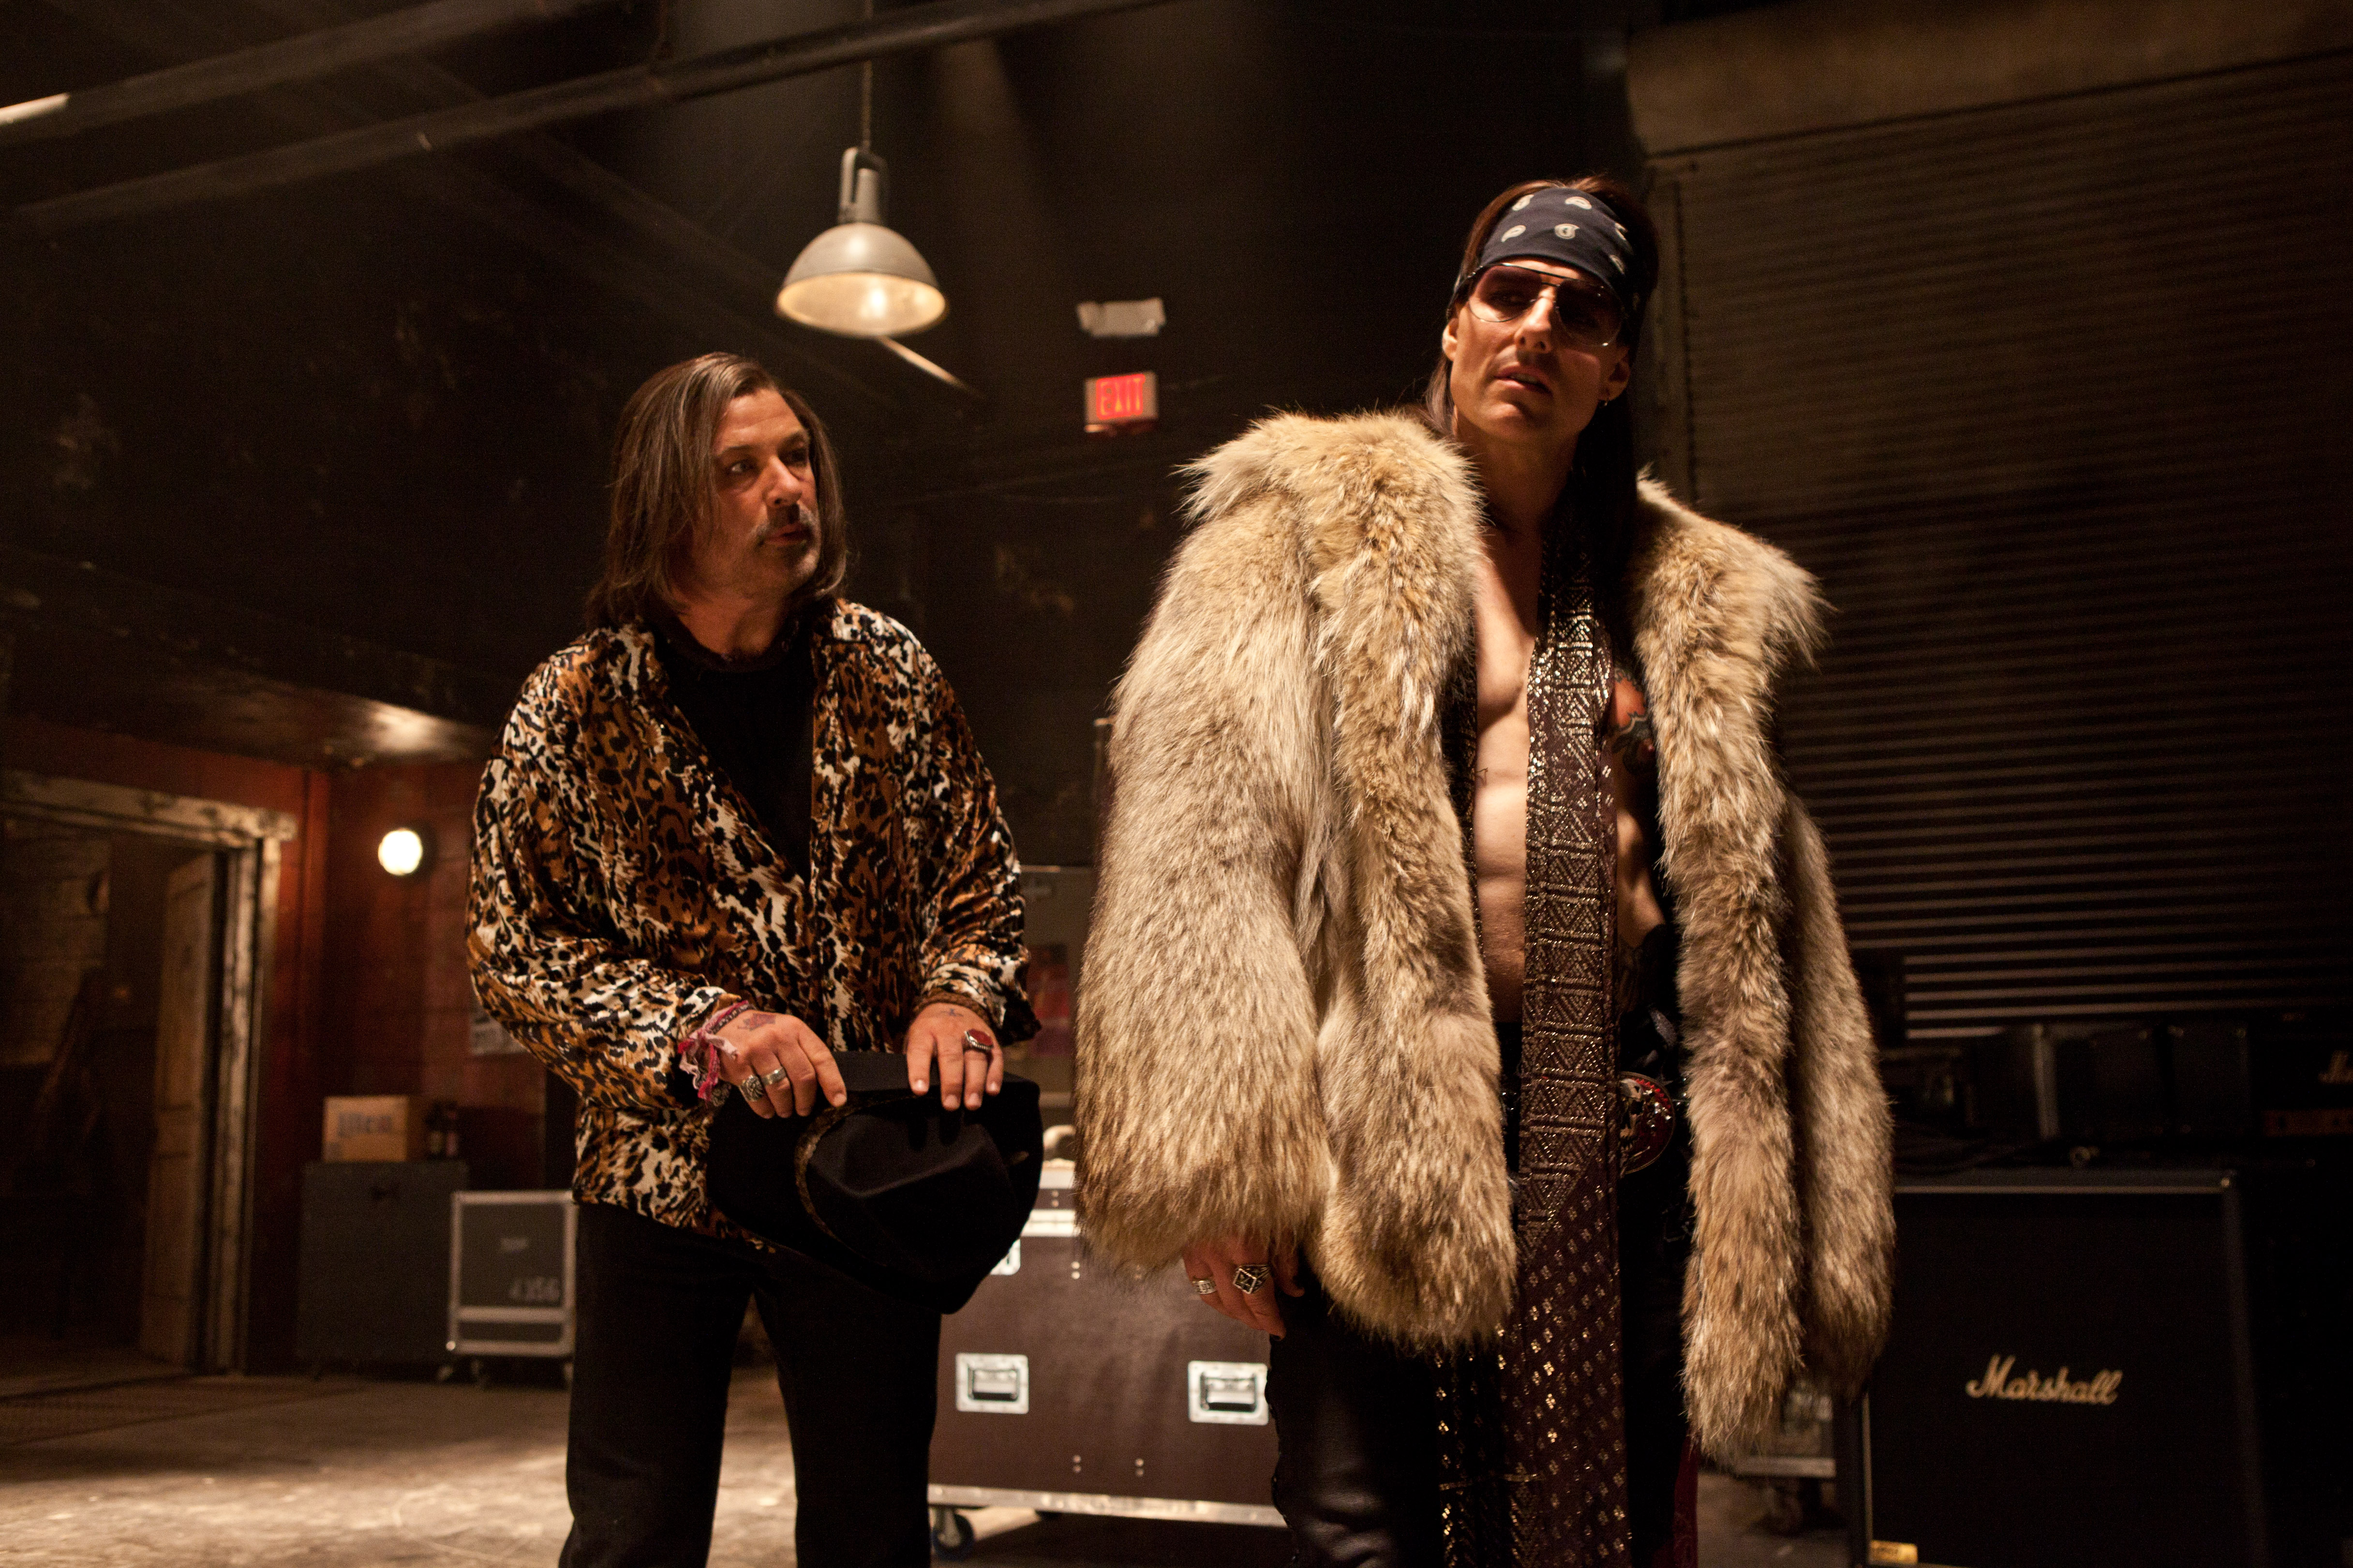 ROCK OF AGES Movie Images Featuring Tom Cruise Collider 4864x3242